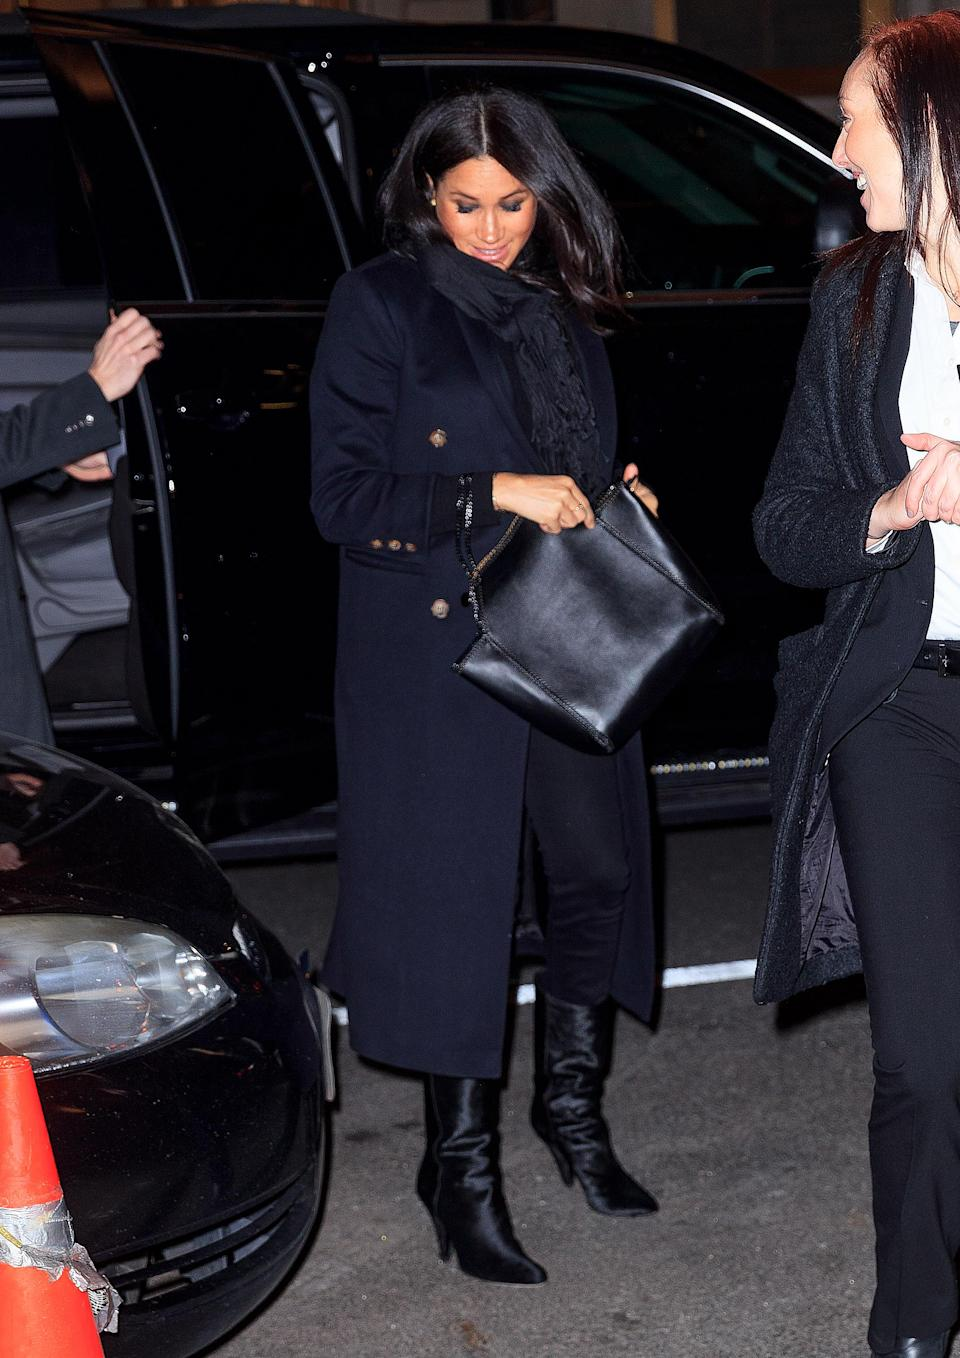 For dinner with friends in NYC, Meghan wore a Victoria Beckham coat, Stella McCartney bag and Hatch maternity jeans. A new pair of velvet boots finished off the look. [Photo: Getty]